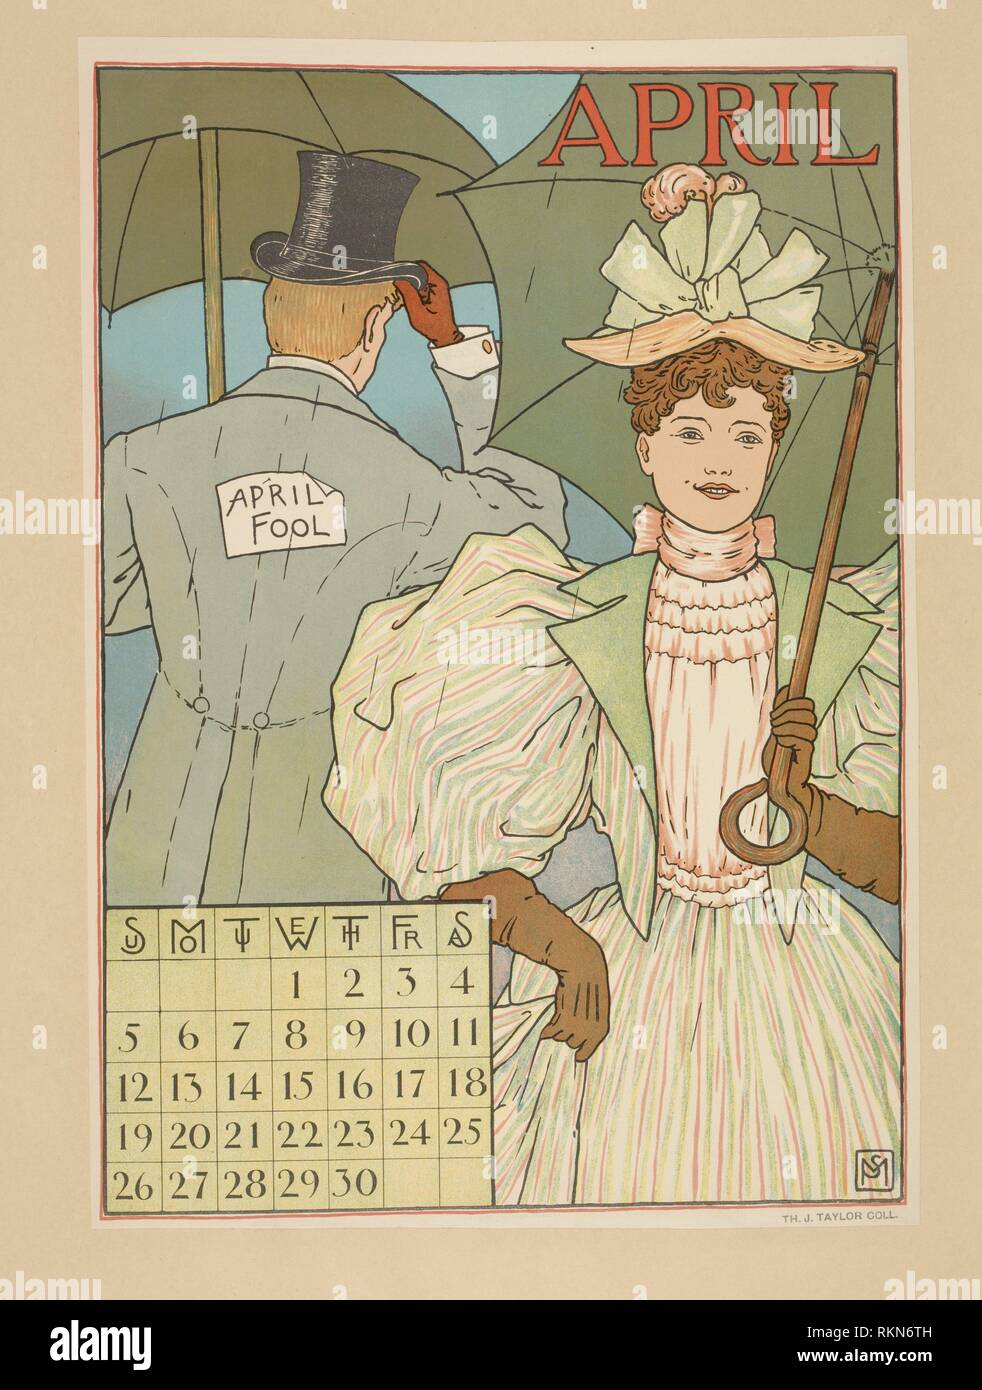 April. Posters: exhibition, exposition, calendar. Date Issued: 1887 - 1922 (Inferred). Posters, American. Posters Calendars. Mounted on card stock. Stock Photo